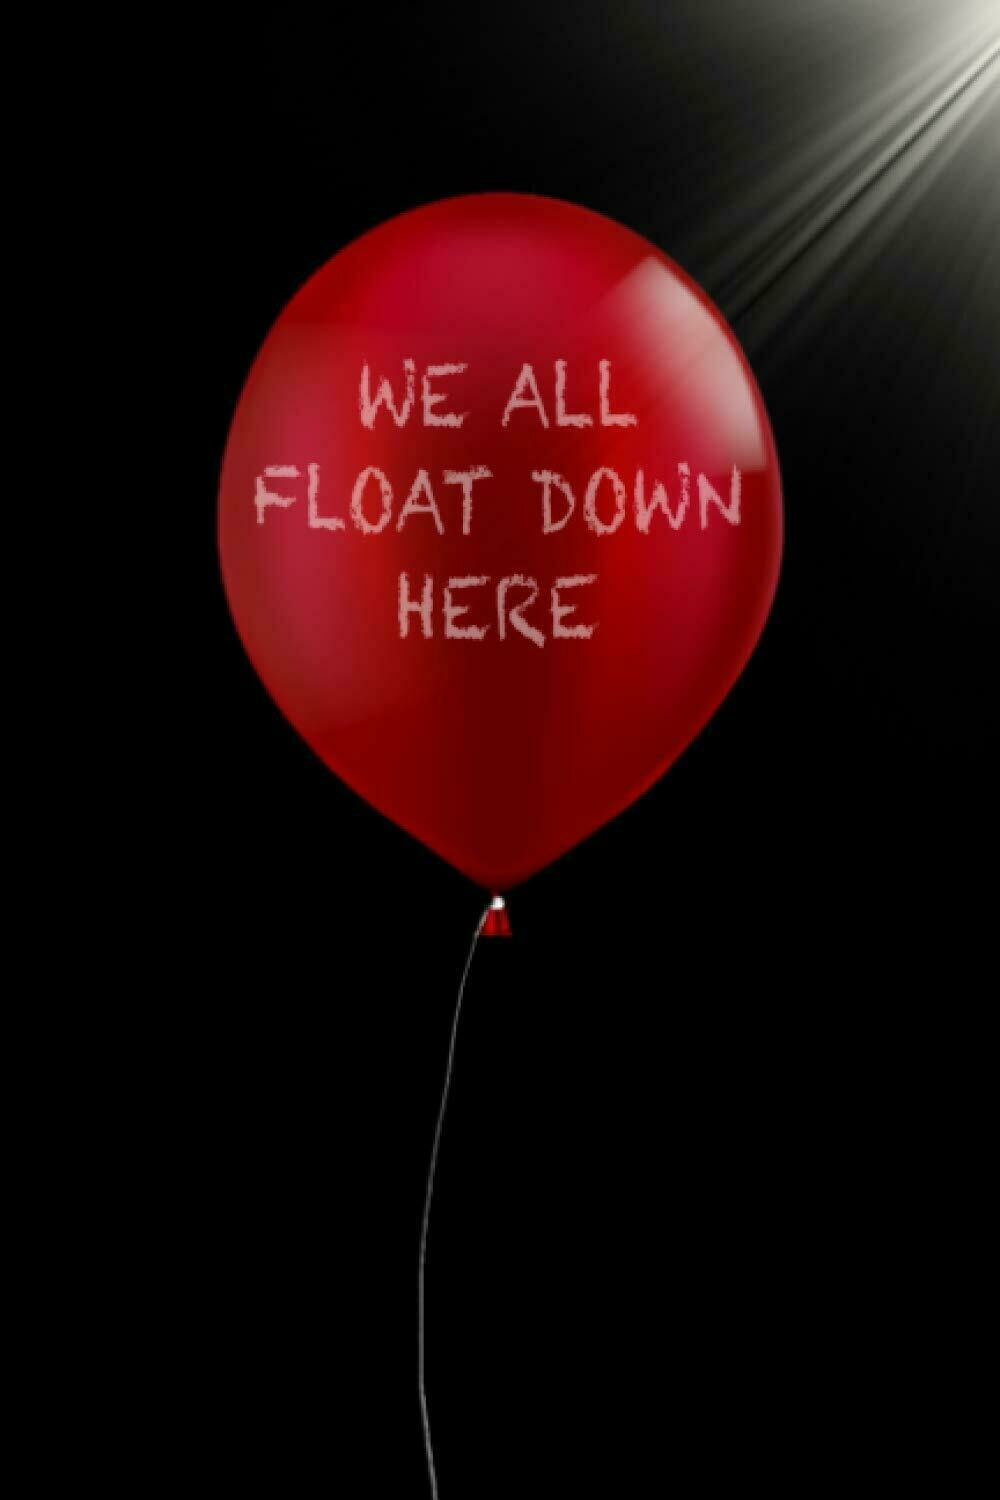 We All Float Down Here (IT / Stephen King) Luxury Lined Notebook - Journal Diary Writing Paper Note Pad Book Horror Movie Replica Red Balloon